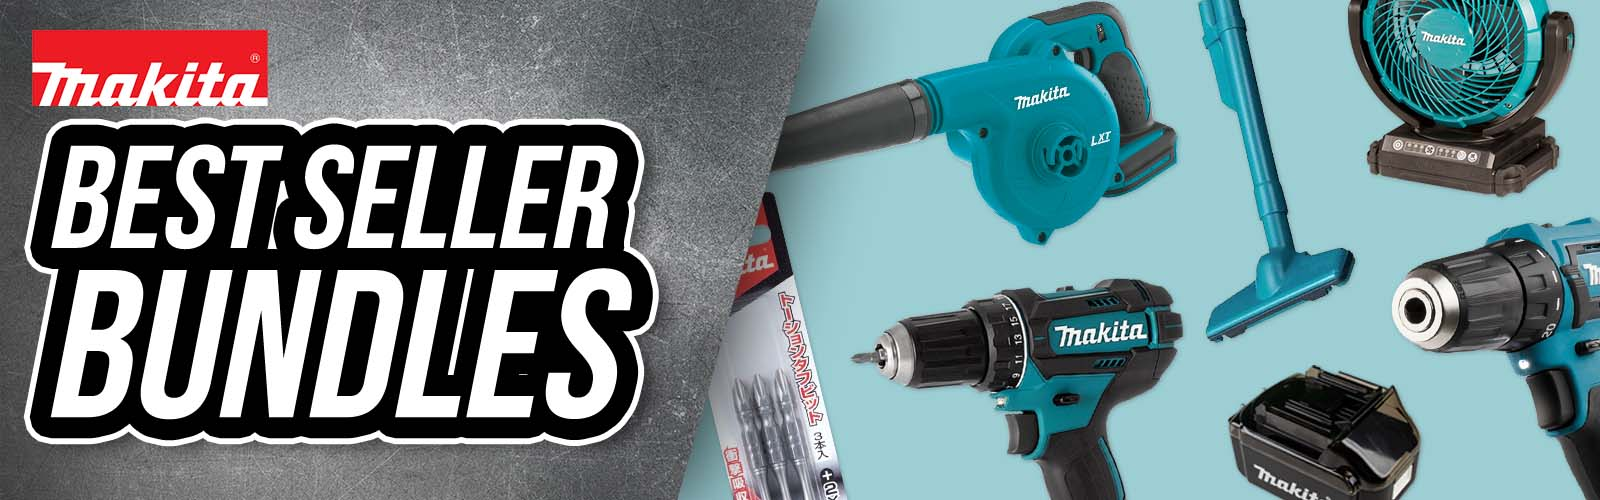 Makita National day Promotion